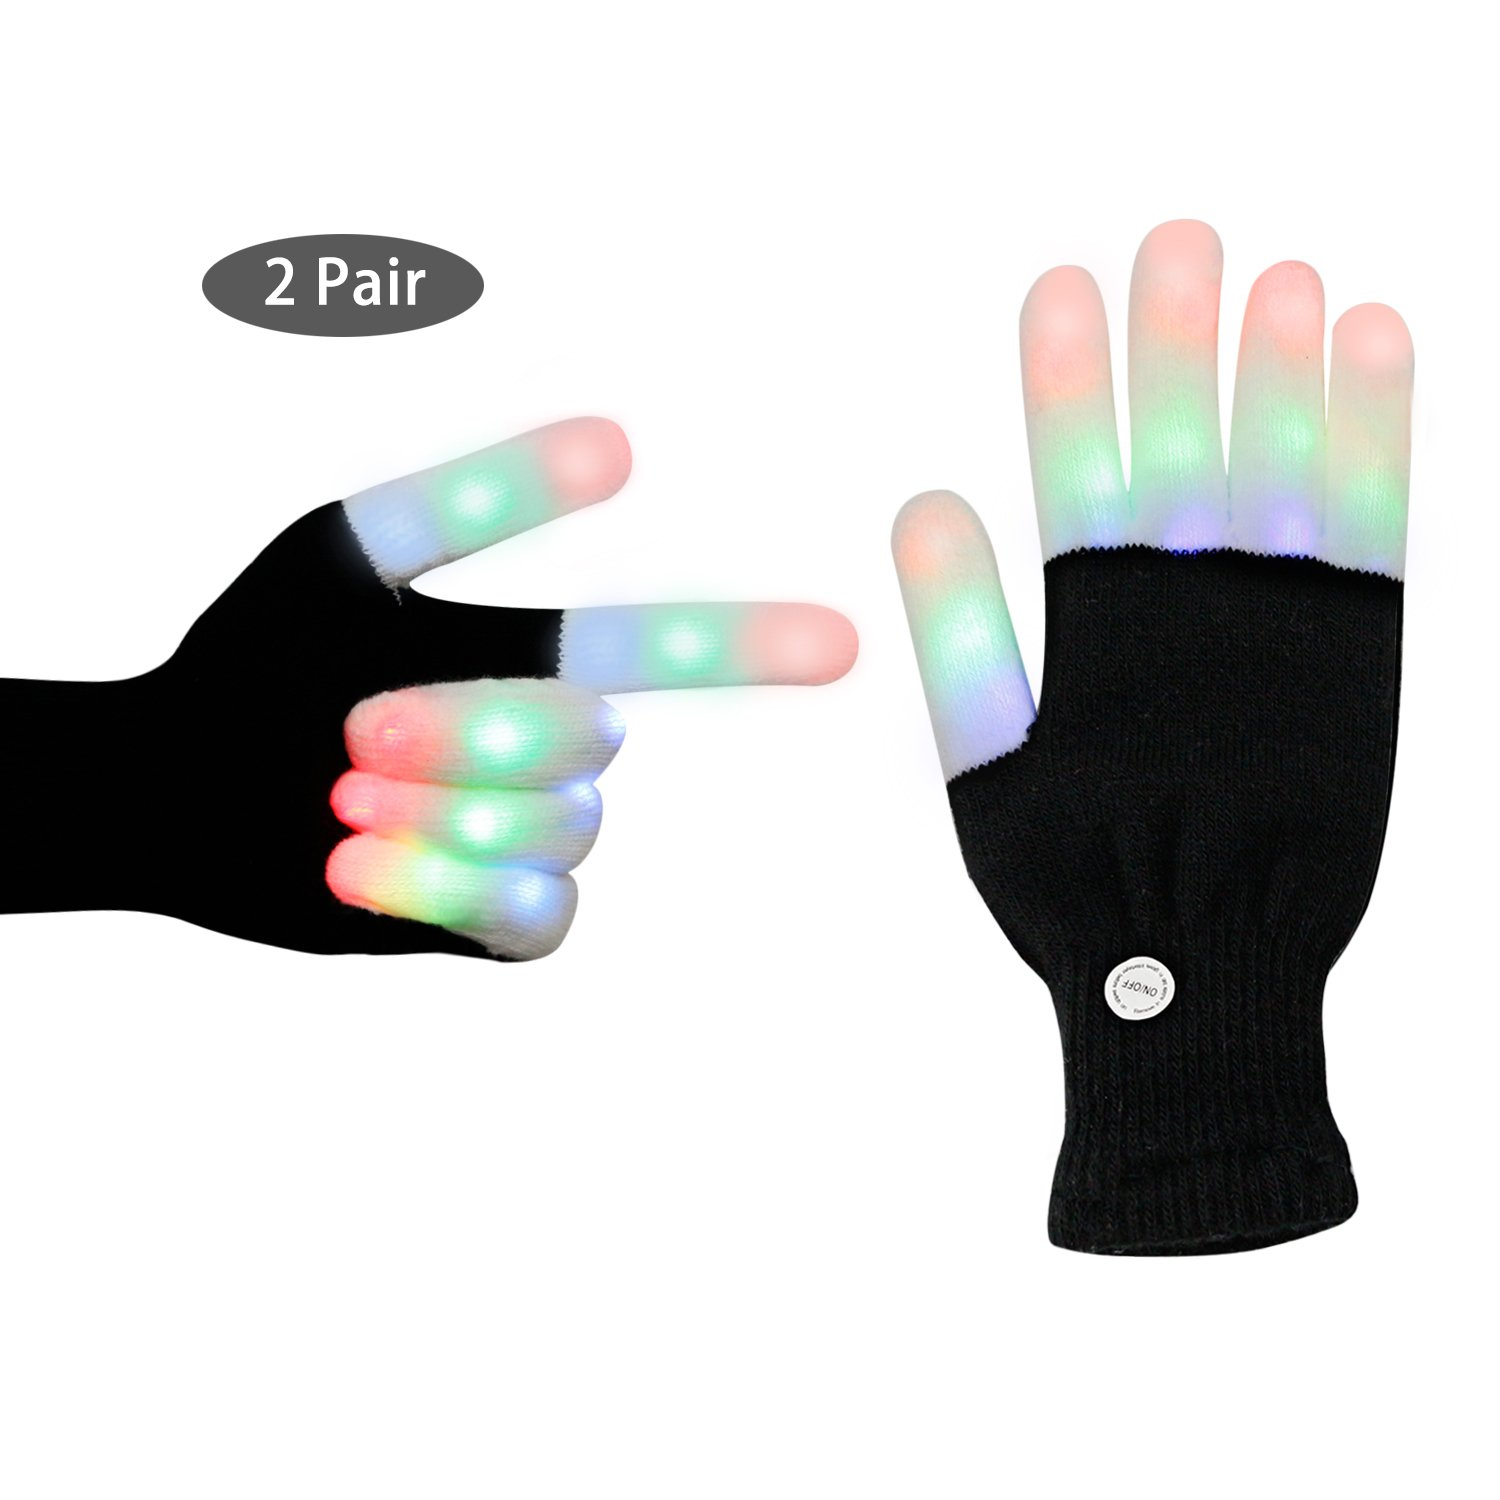 LED Gloves, Light up Colorful Finger lighting Glow Rave Glove with 3 Colors 6 Modes Flashing for Kids Adults for Party LightShow Disco Camping Halloween Christmas Birthday Gifts (2 Pair)